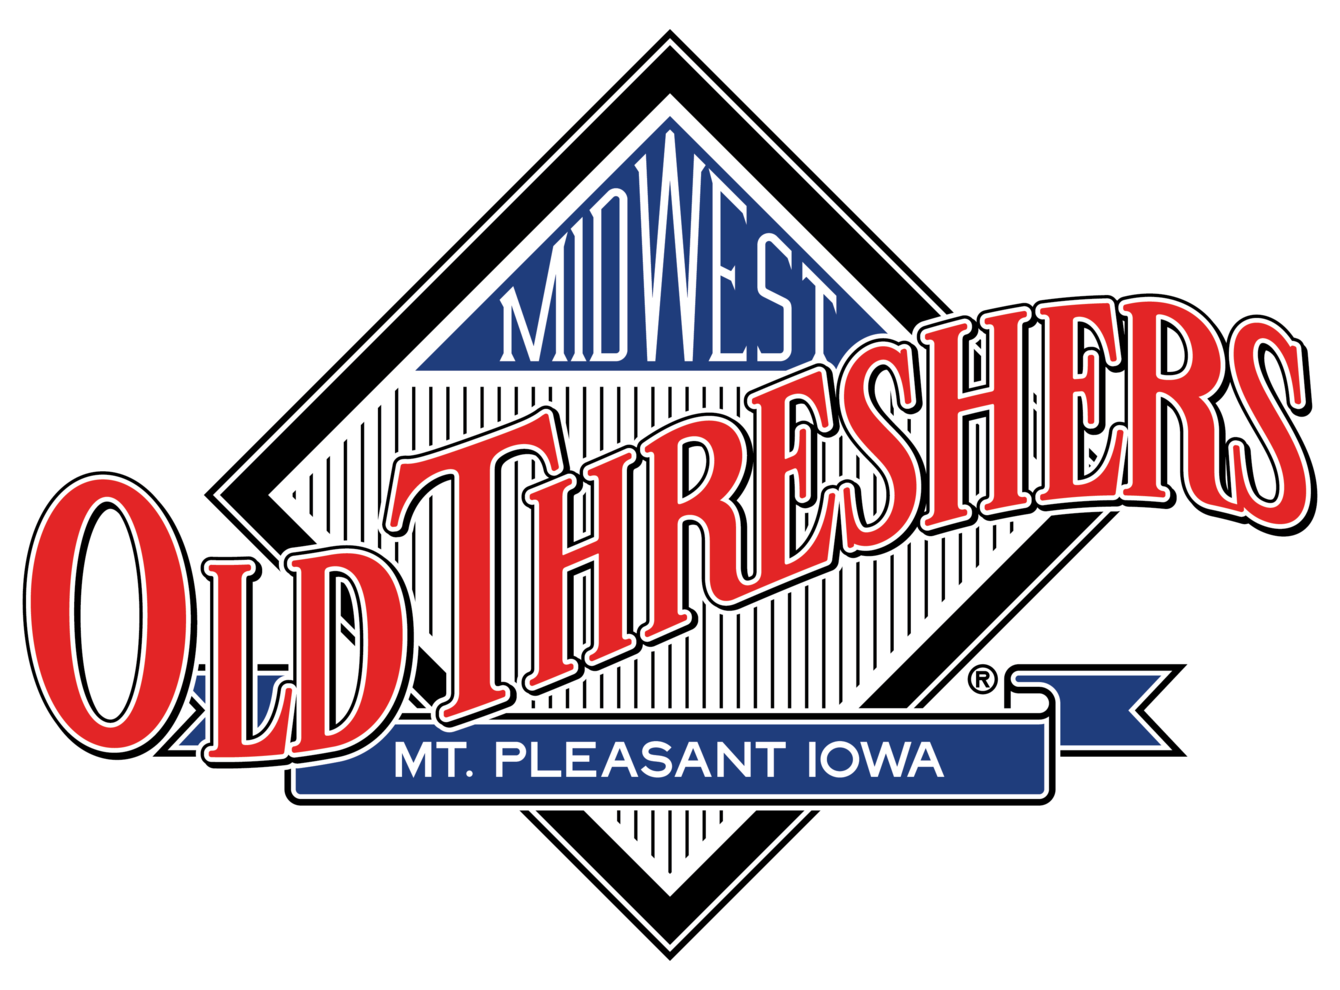 Midwest Old Settlers And Threshers